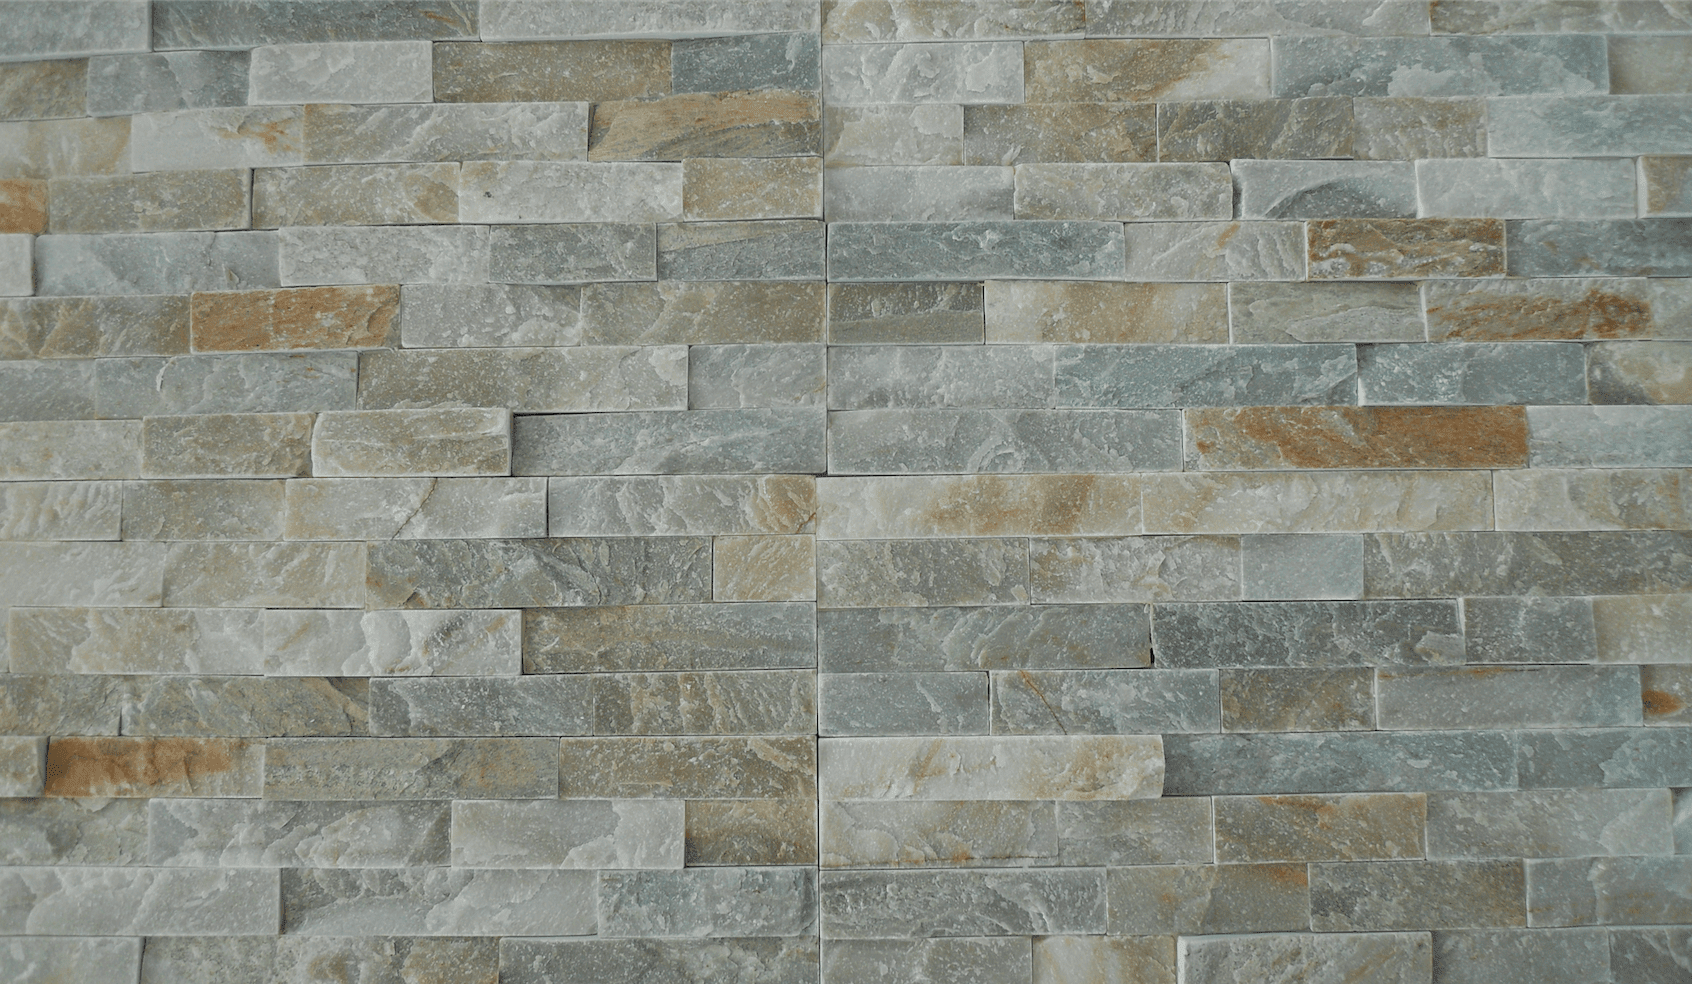 Silver Ridge - Slate cheap stone veneer clearance - Discount Stones wholesale stone veneer, cheap brick veneer, cultured stone for sale